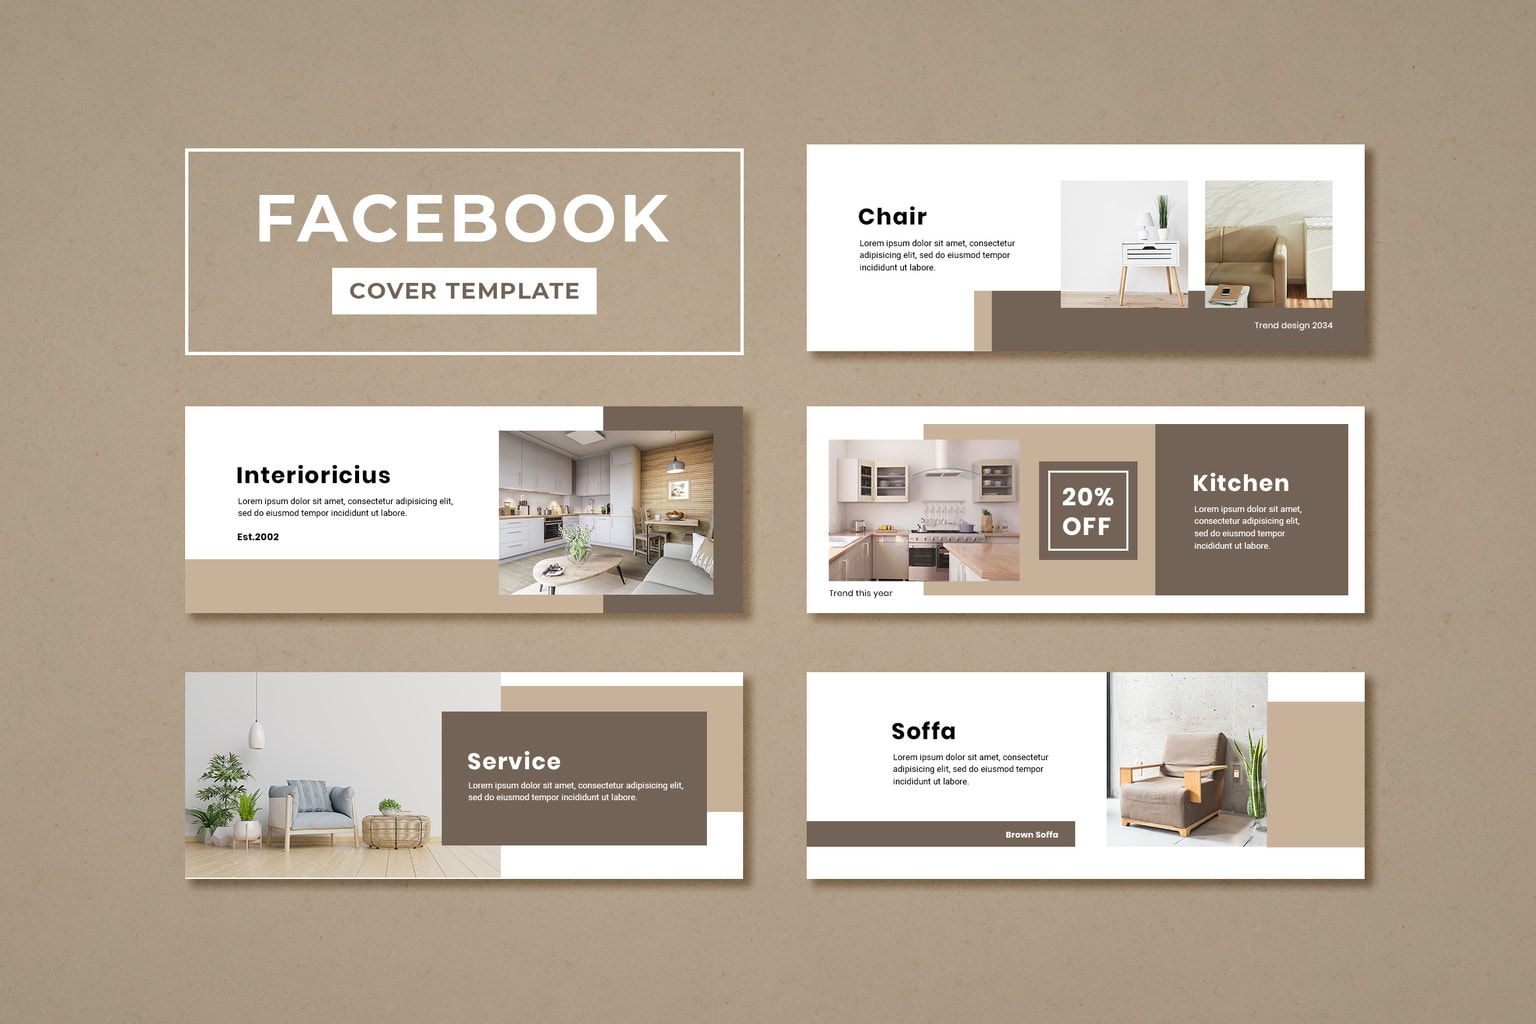 facebook cover minimalist home interior